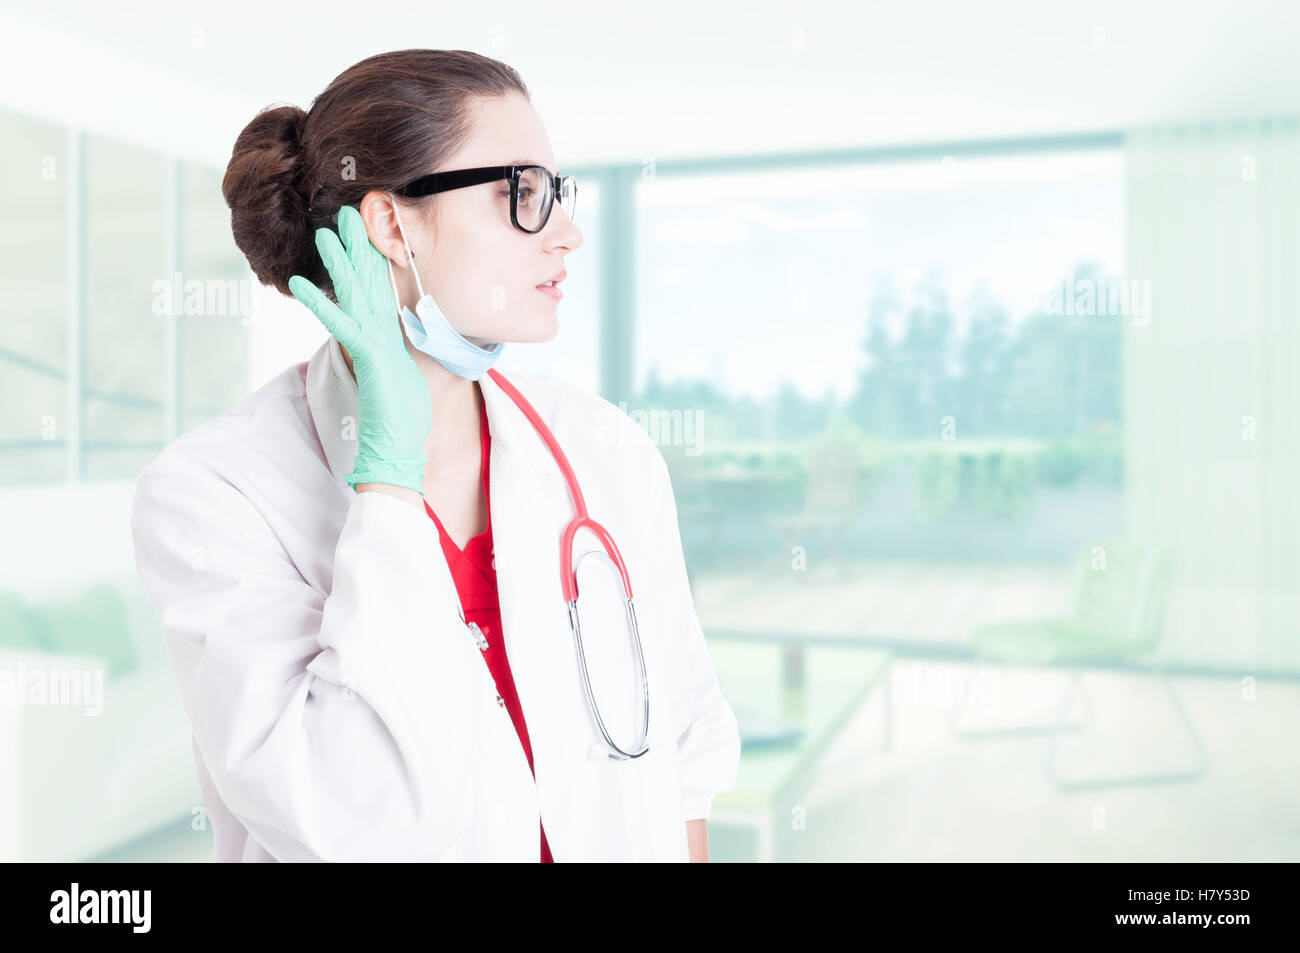 Professional medic listening latest news or gossips at the job with text area - Stock Image